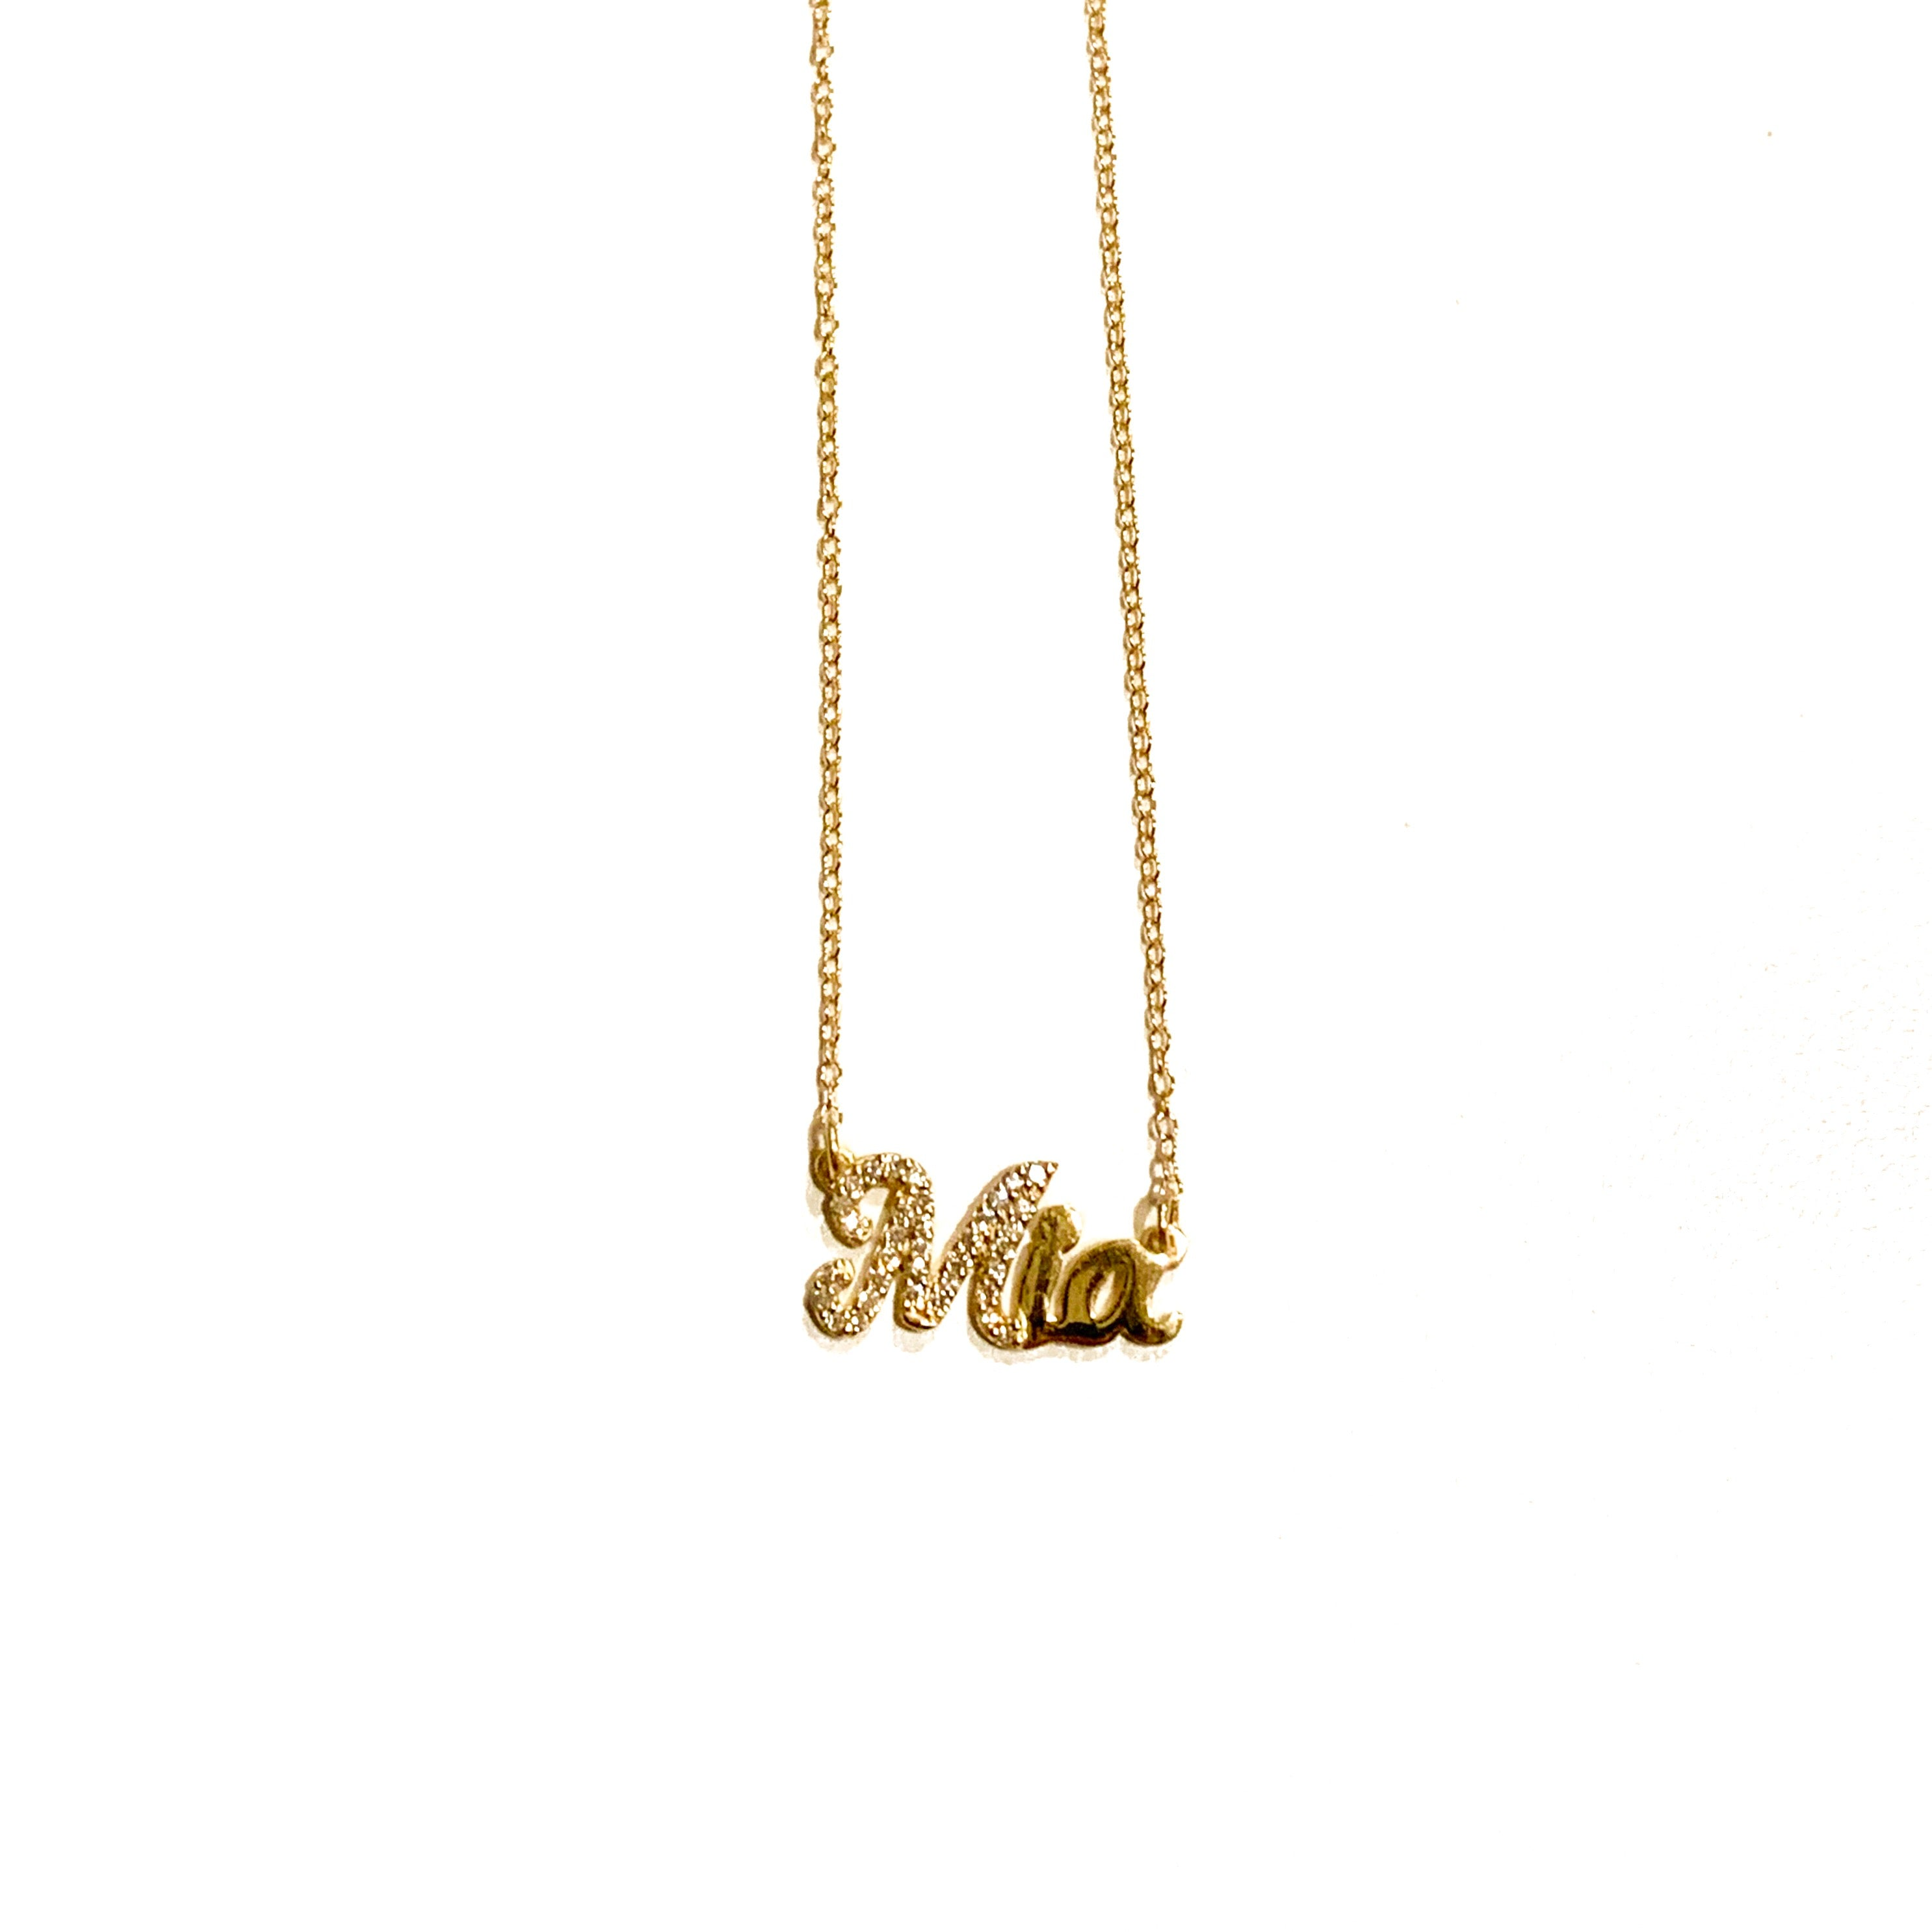 10K Gold Diamond First Letter Name Necklace